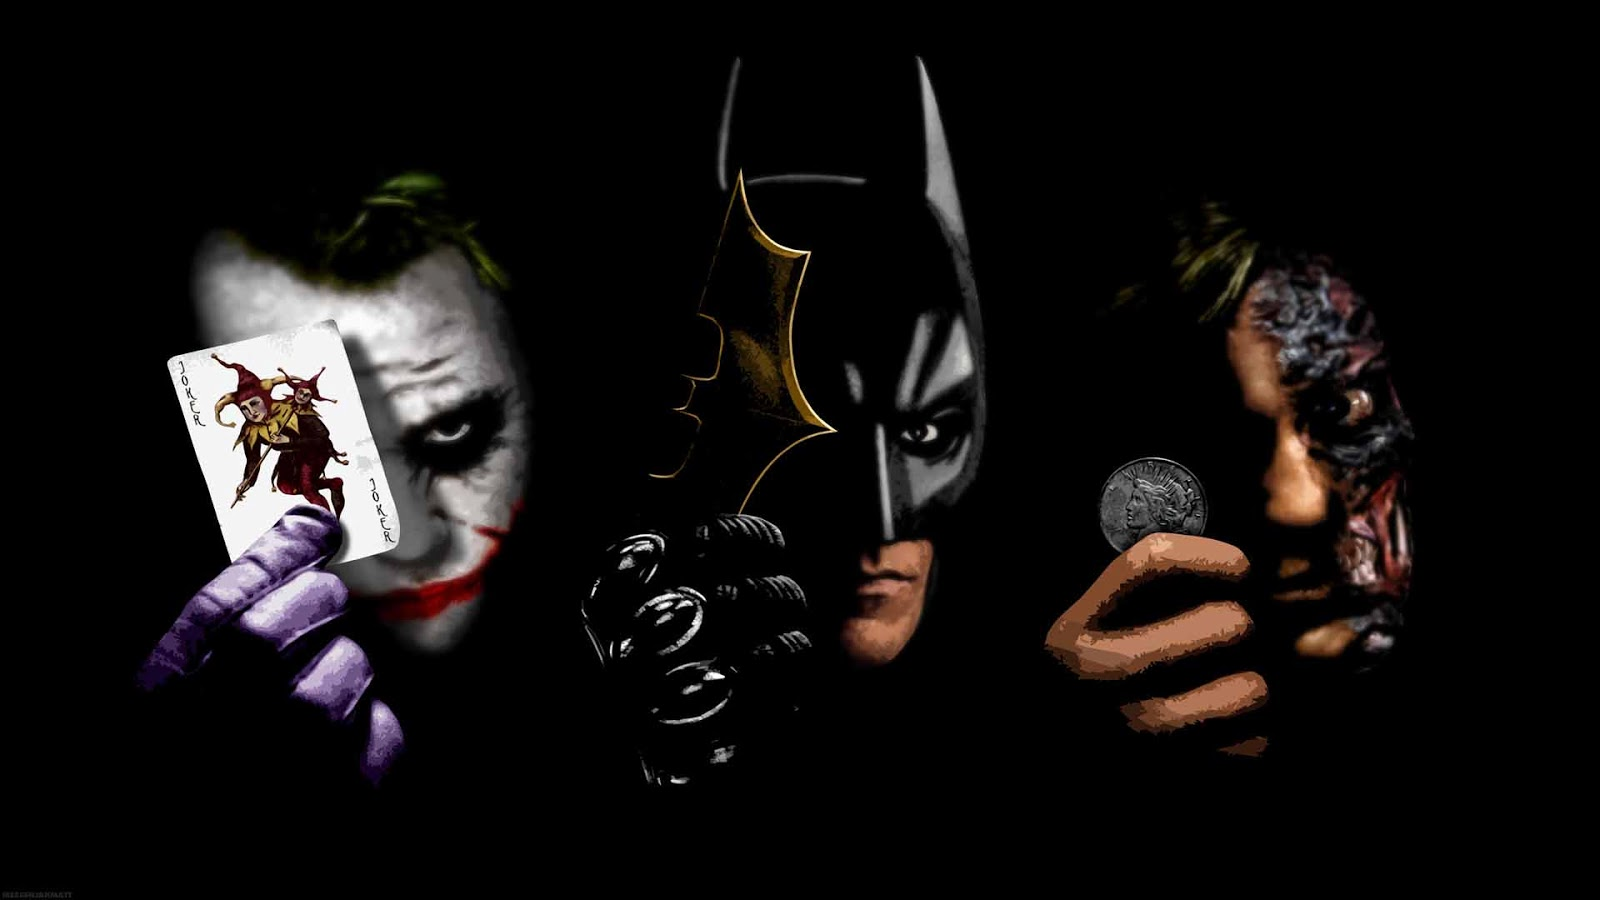 Batman and joker wallpapers hd